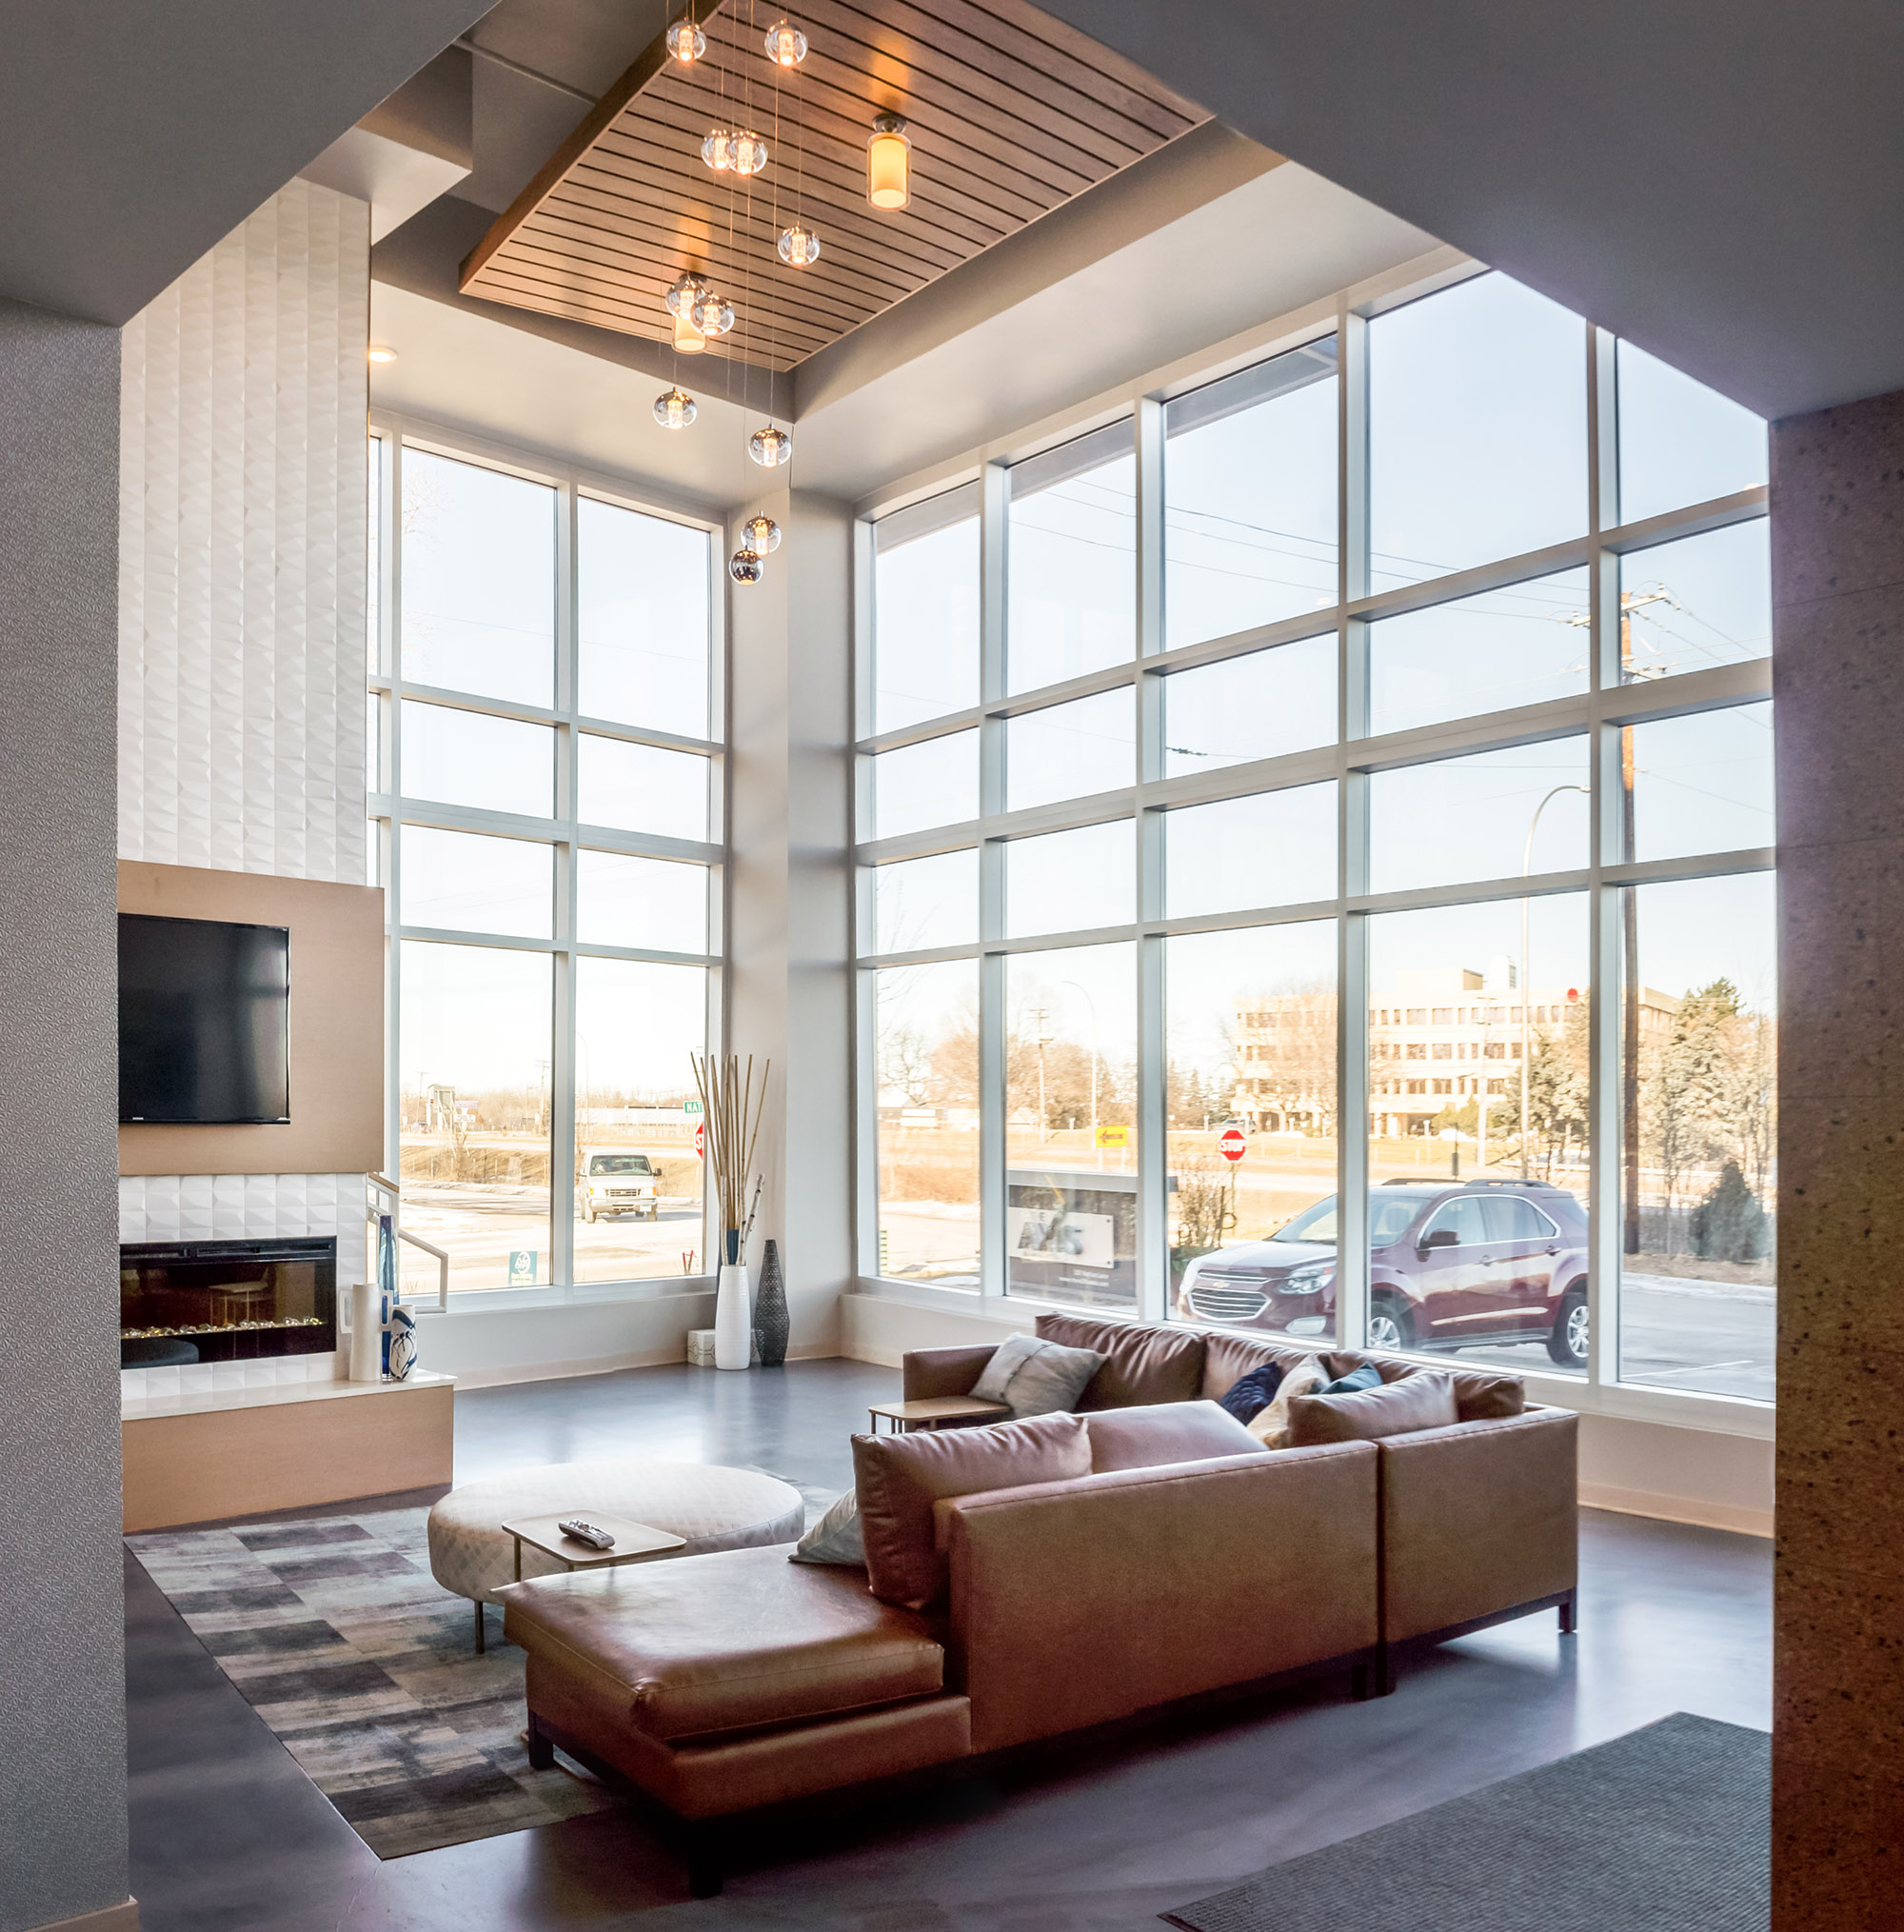 The Axis Apartments Kaas Wilson Architects